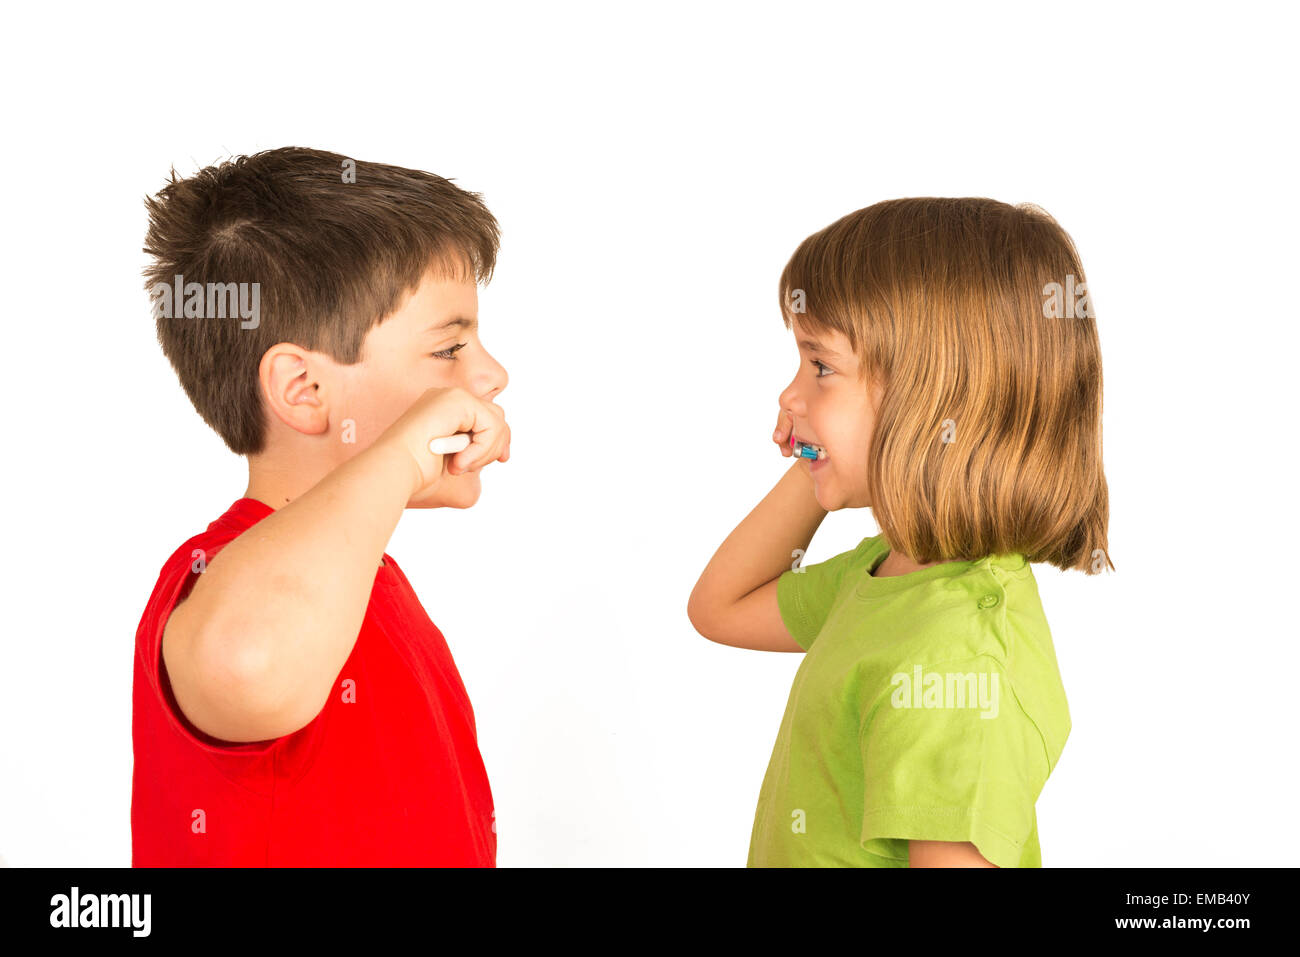 Portrait of a little girl and a young boy brushing teeth facing each other Stock Photo